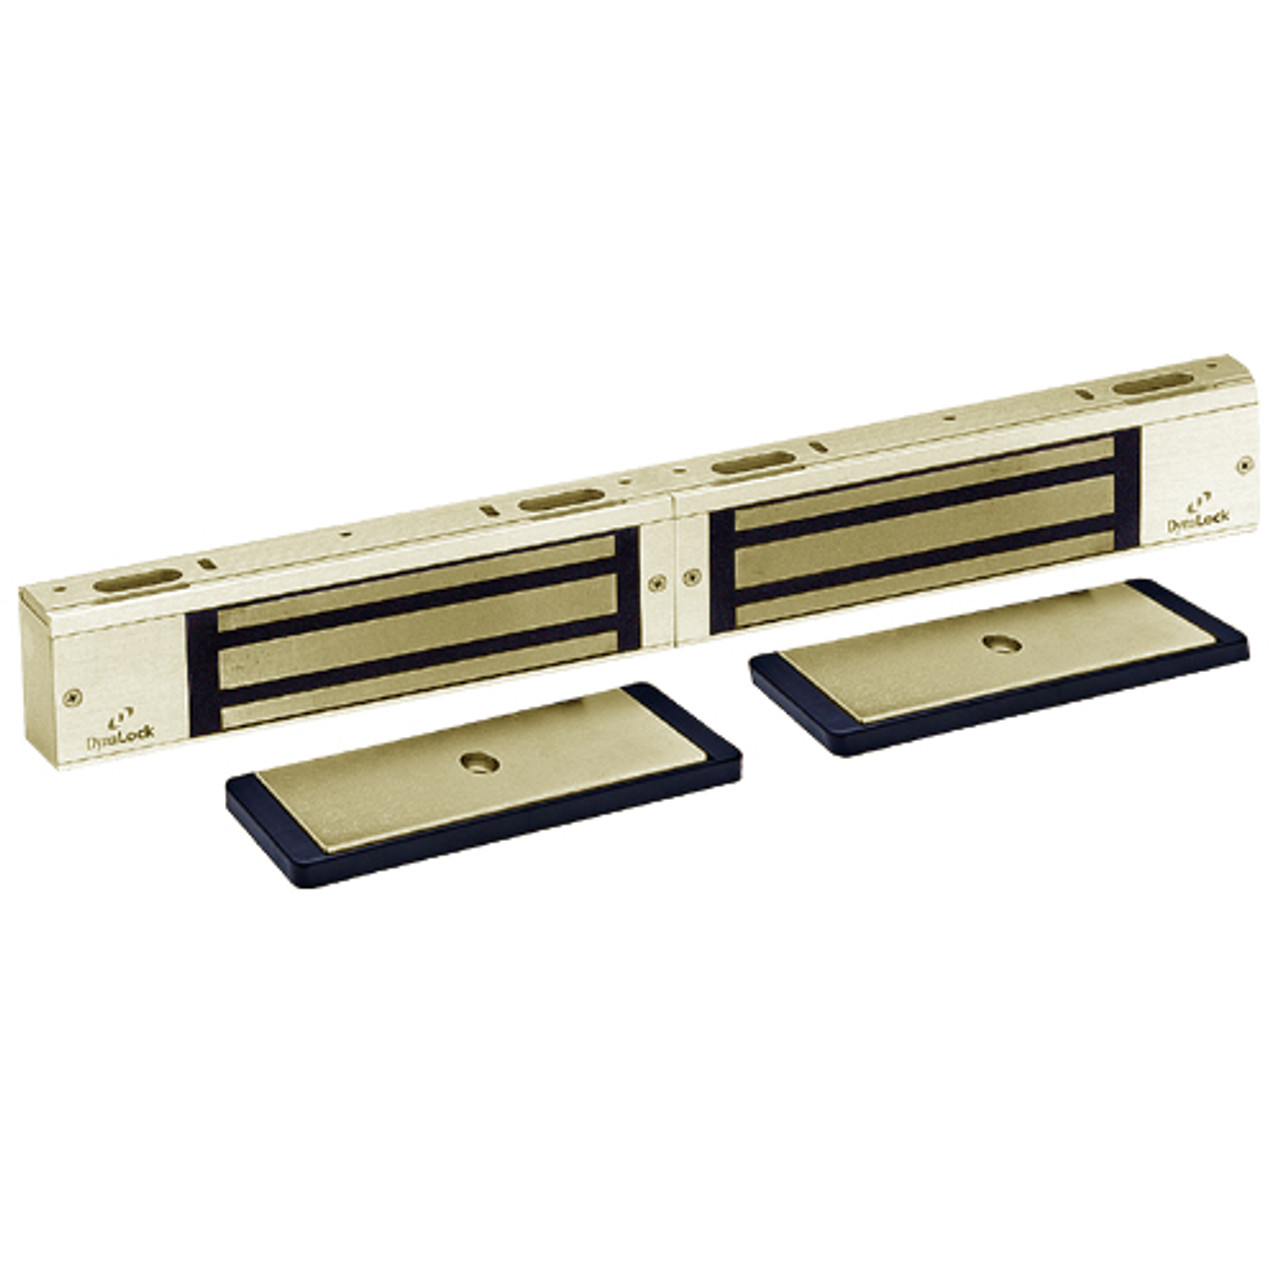 3002-US4-DSM2 DynaLock 3000 Series 1500 LBs Double Electromagnetic Lock for Outswing Door with DSM in Satin Brass